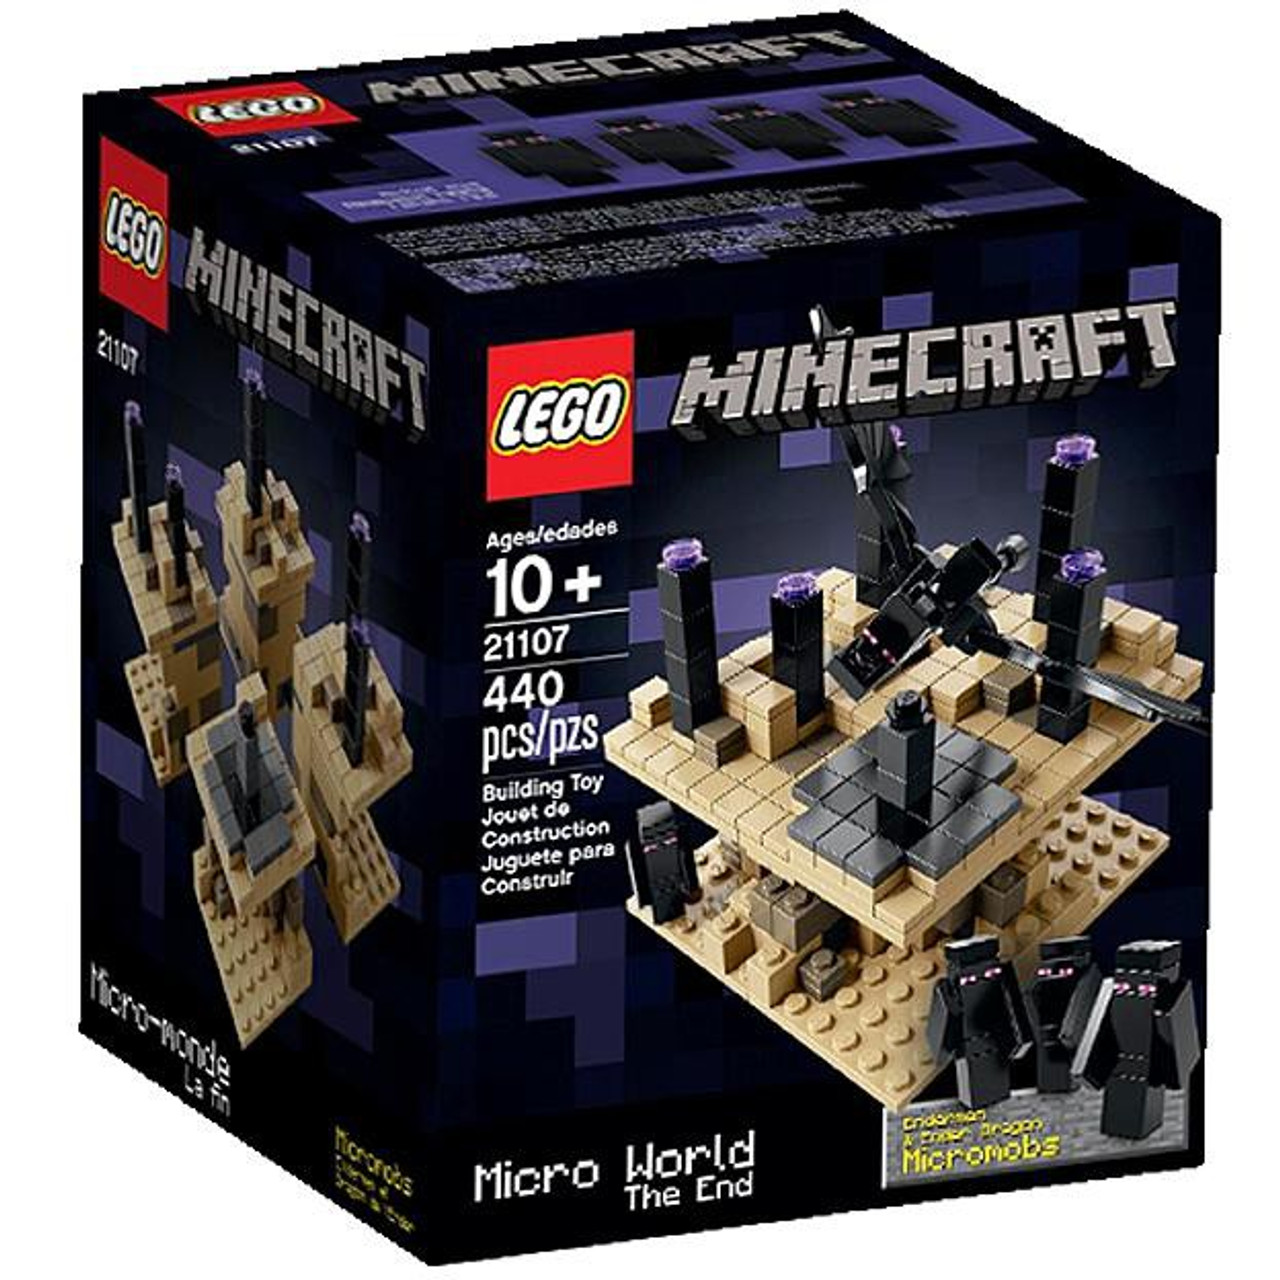 LEGO Minecraft Micro World The End Set #21107